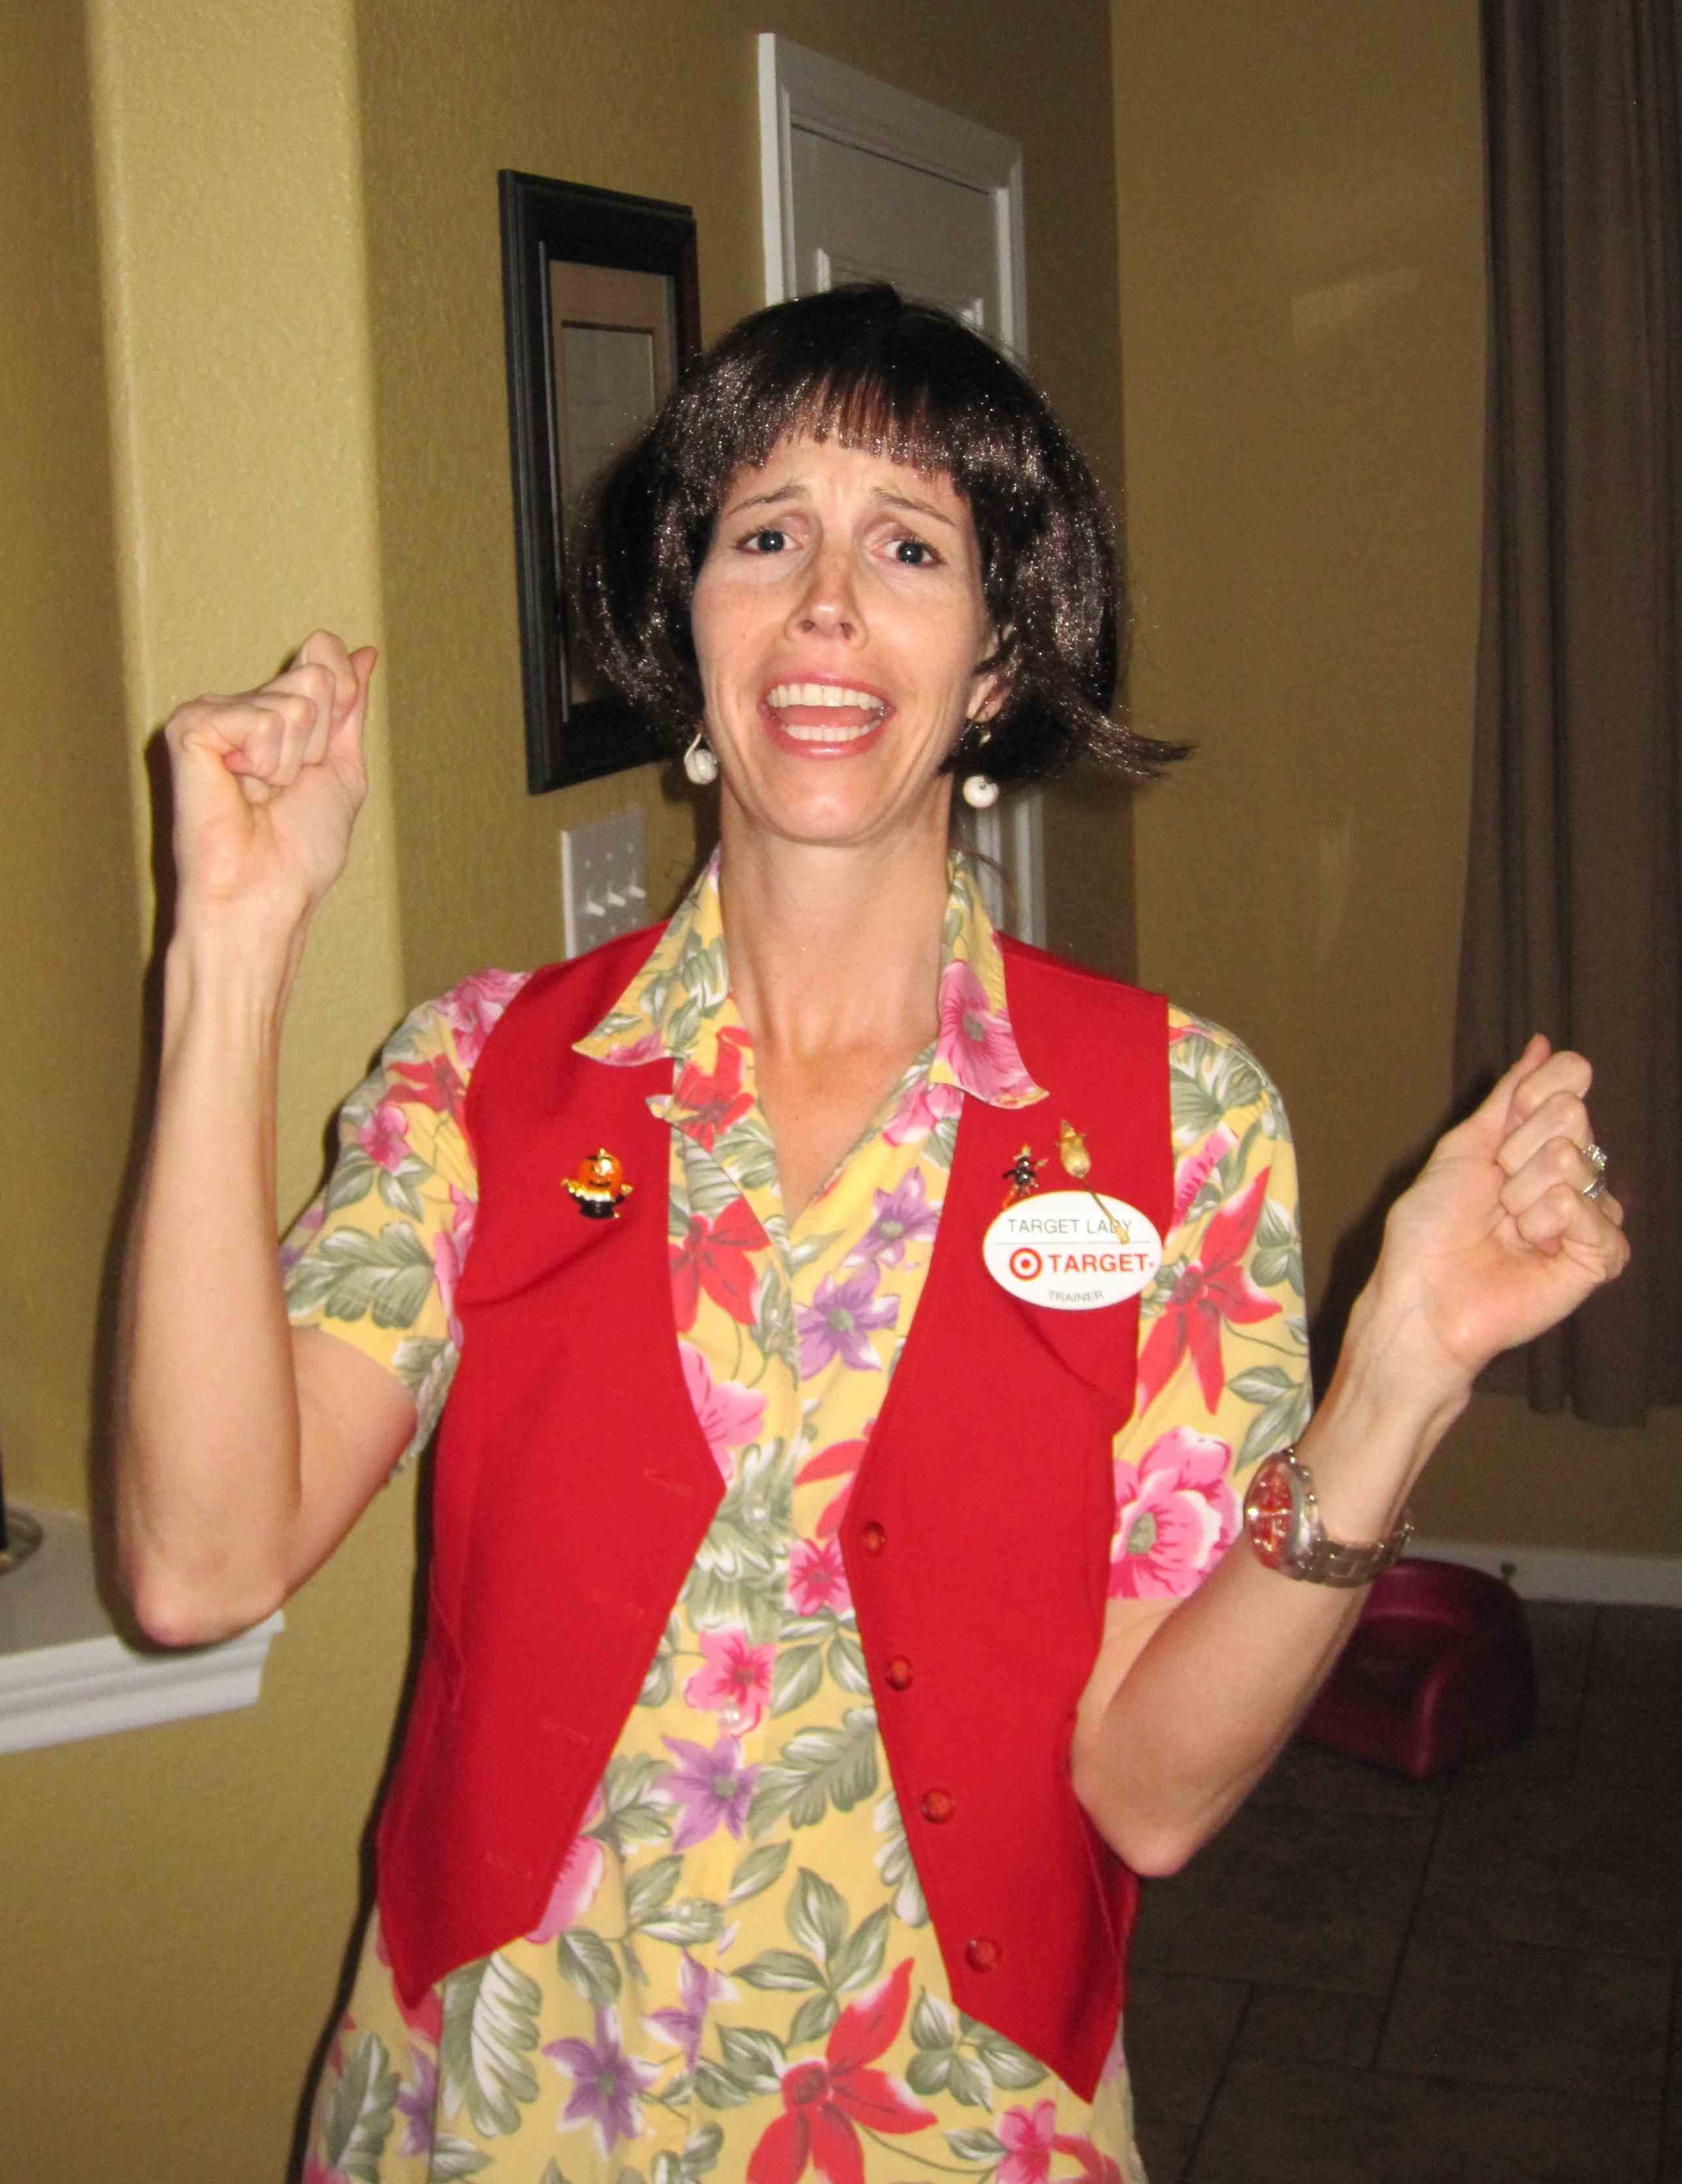 Kristen Wiig Snl Target Lady Images amp Pictures Becuo